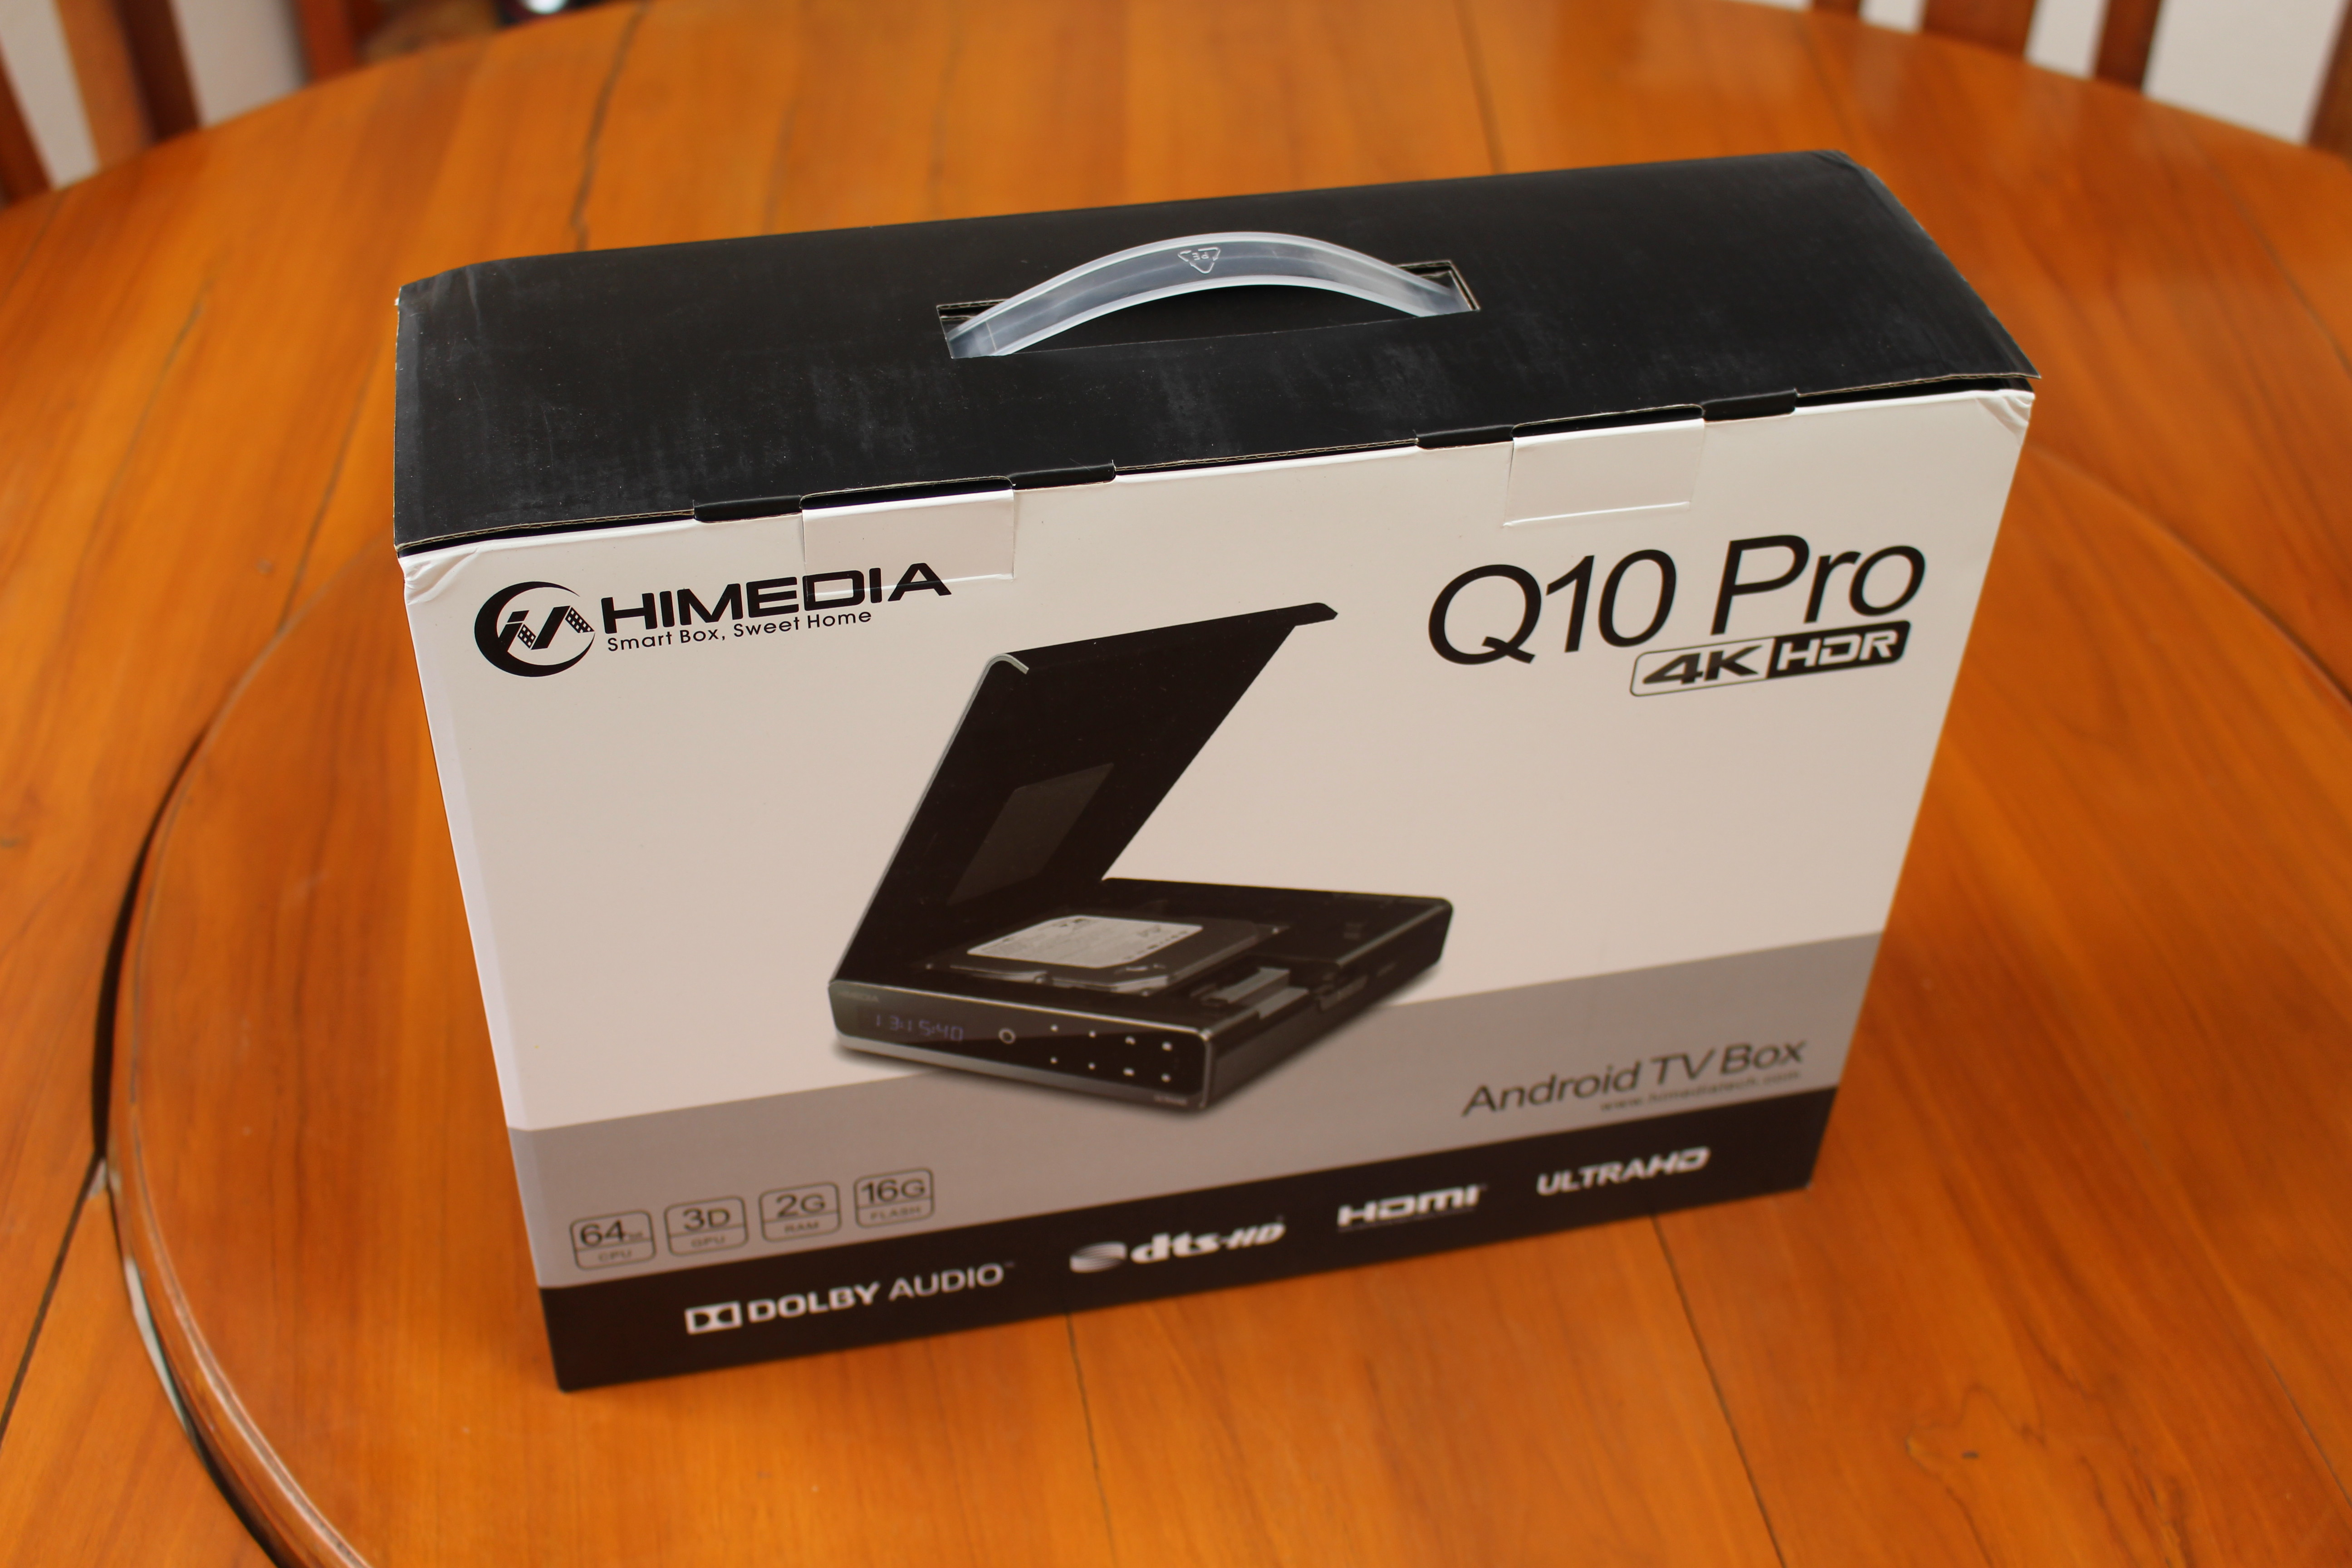 HiMedia Q10 Pro TV Box Review - Part 1: Unboxing and 3 5